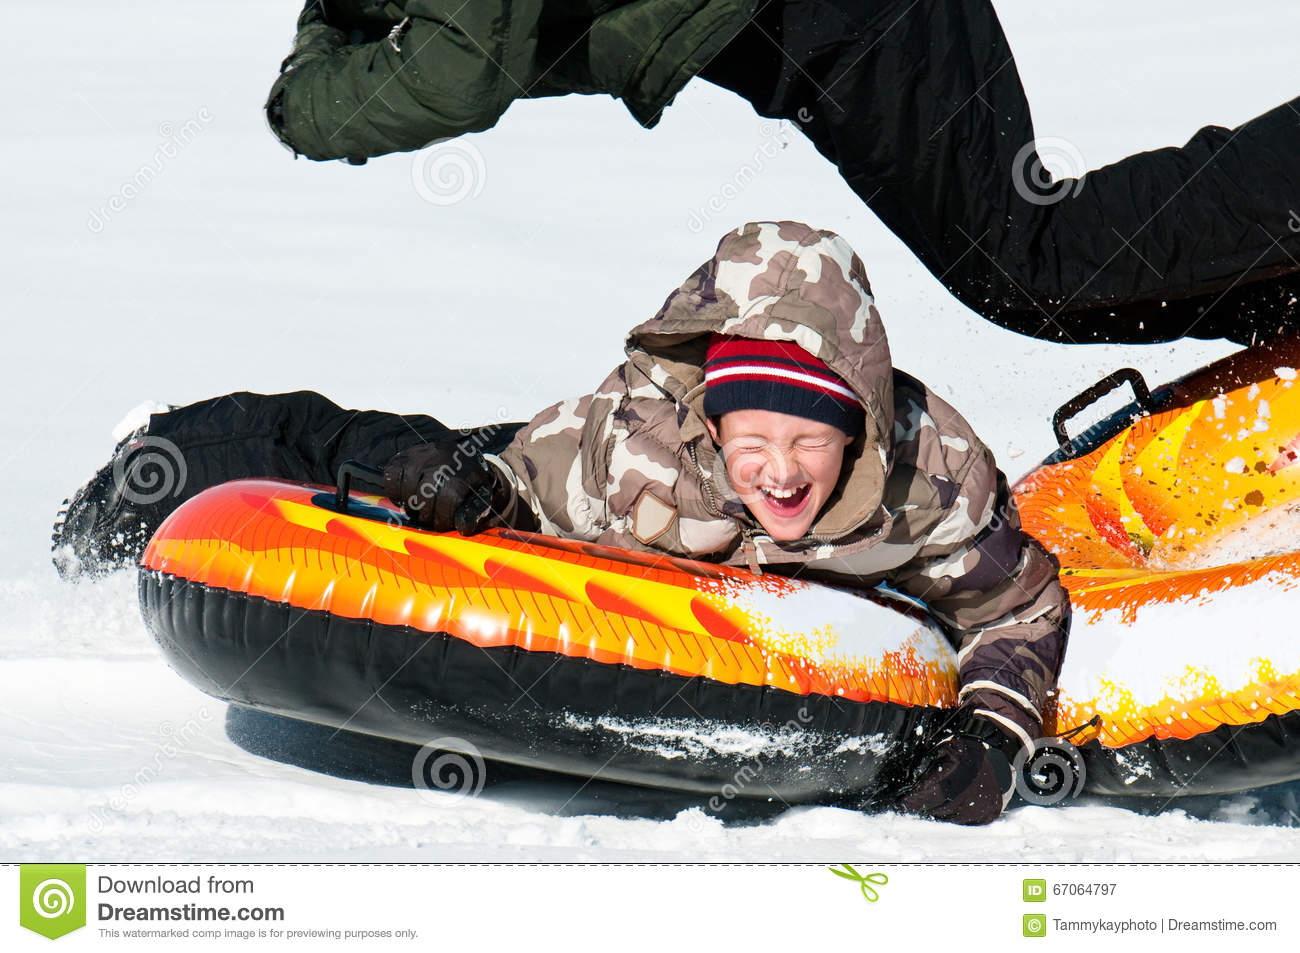 04640969c Young Boy Laughing On A Snow Tube Stock Image - Image of nature ...